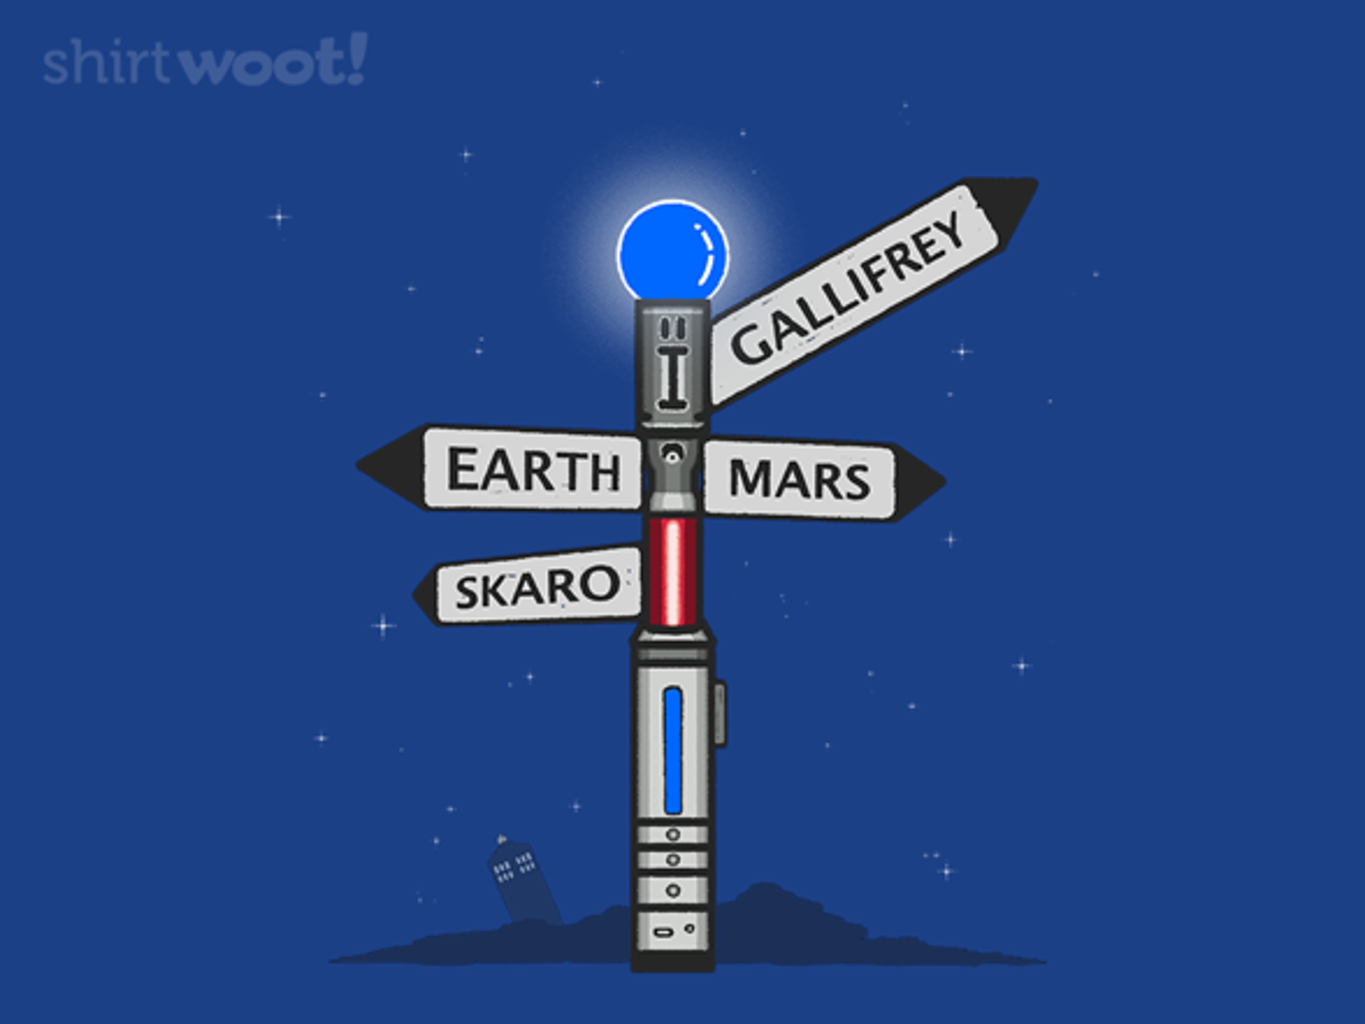 Woot!: Sonic Signpost